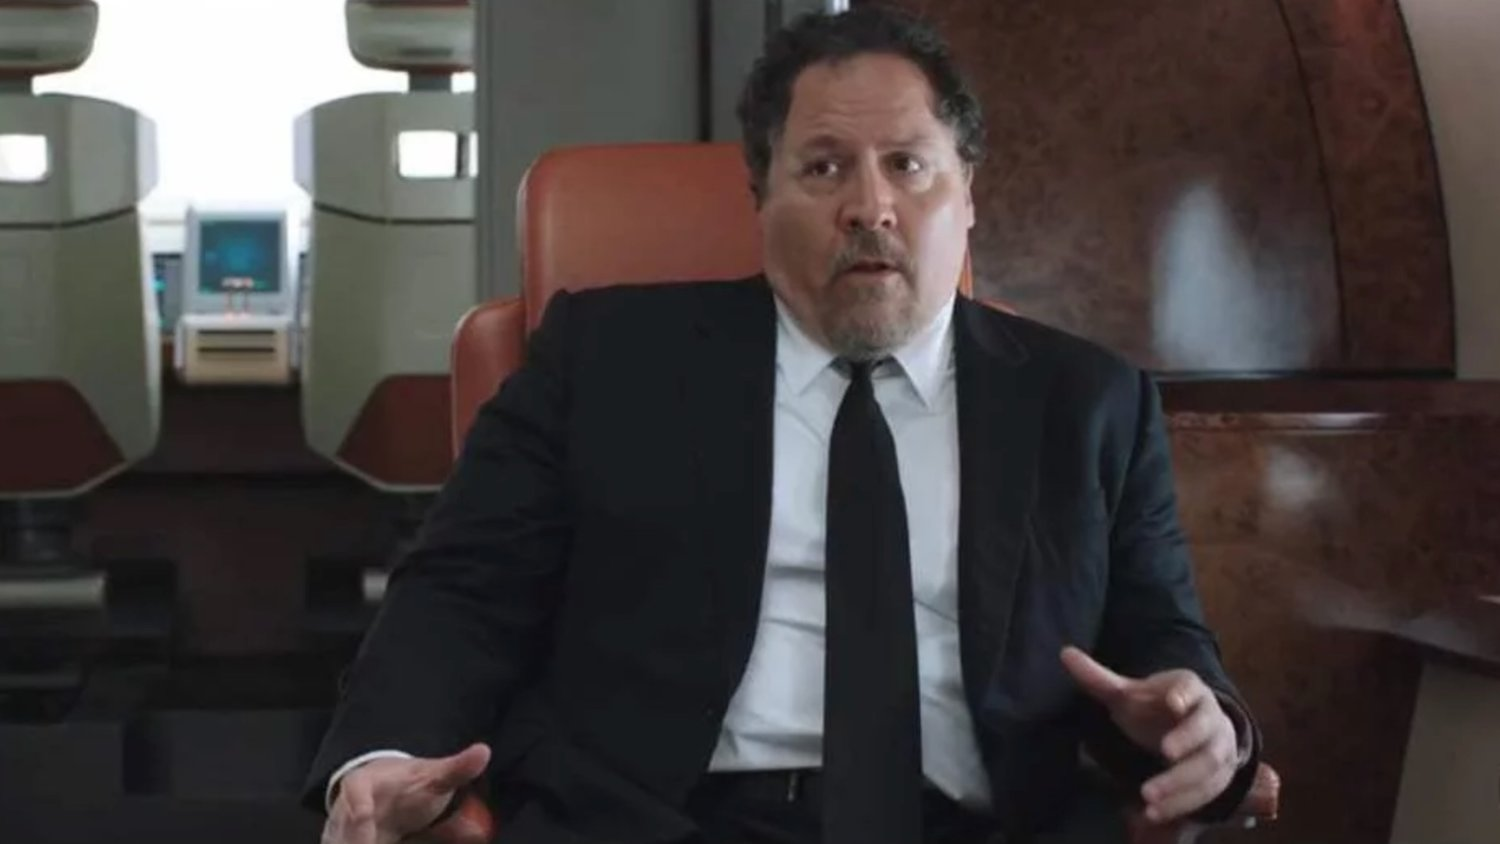 Jon Favreau's Plan To Erase The Star Wars Sequel Trilogy Revealed?